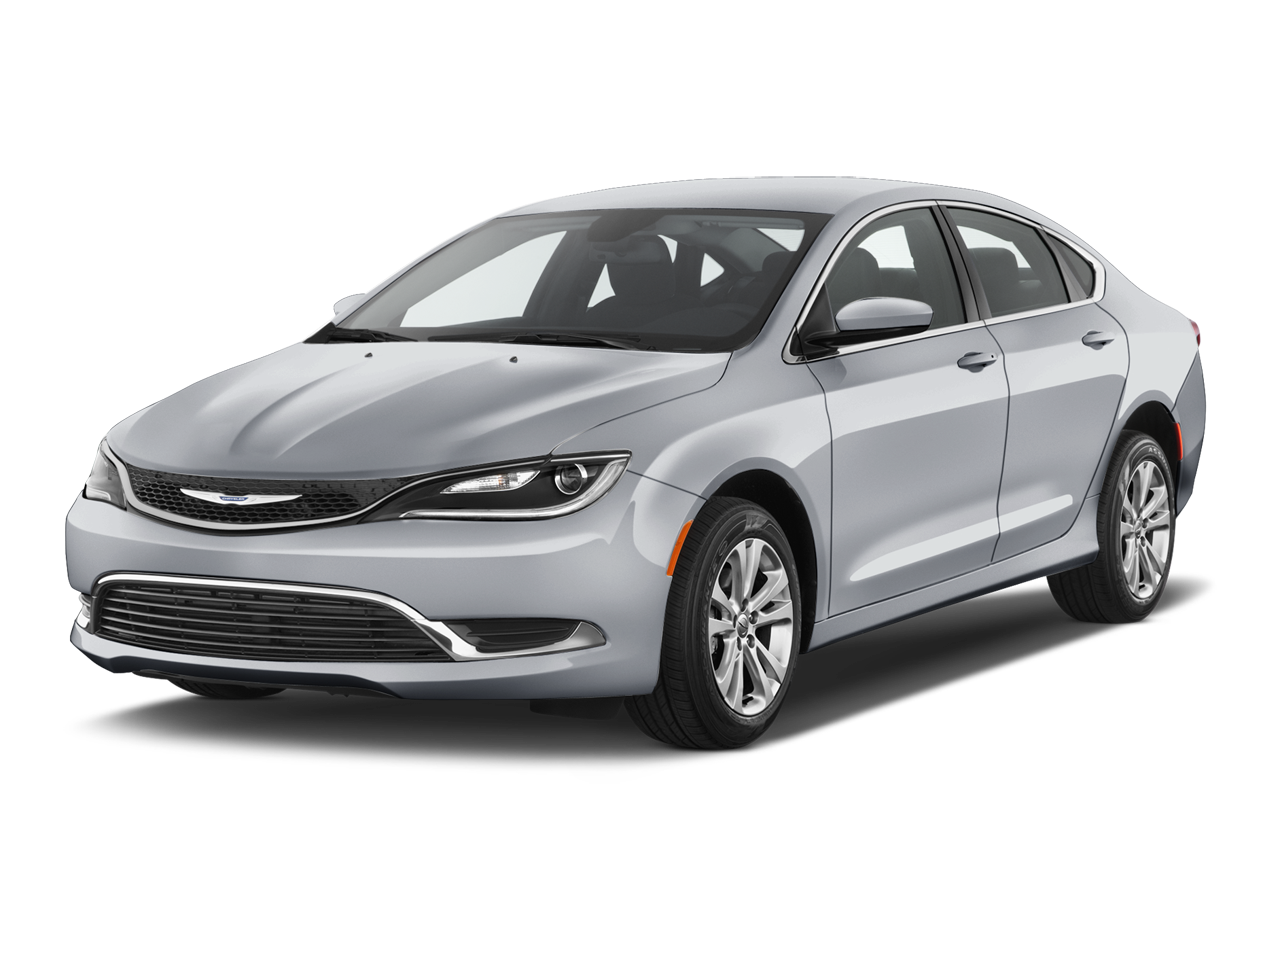 used 2015 chrysler 200 limited near woburn ma woburn toyota. Black Bedroom Furniture Sets. Home Design Ideas